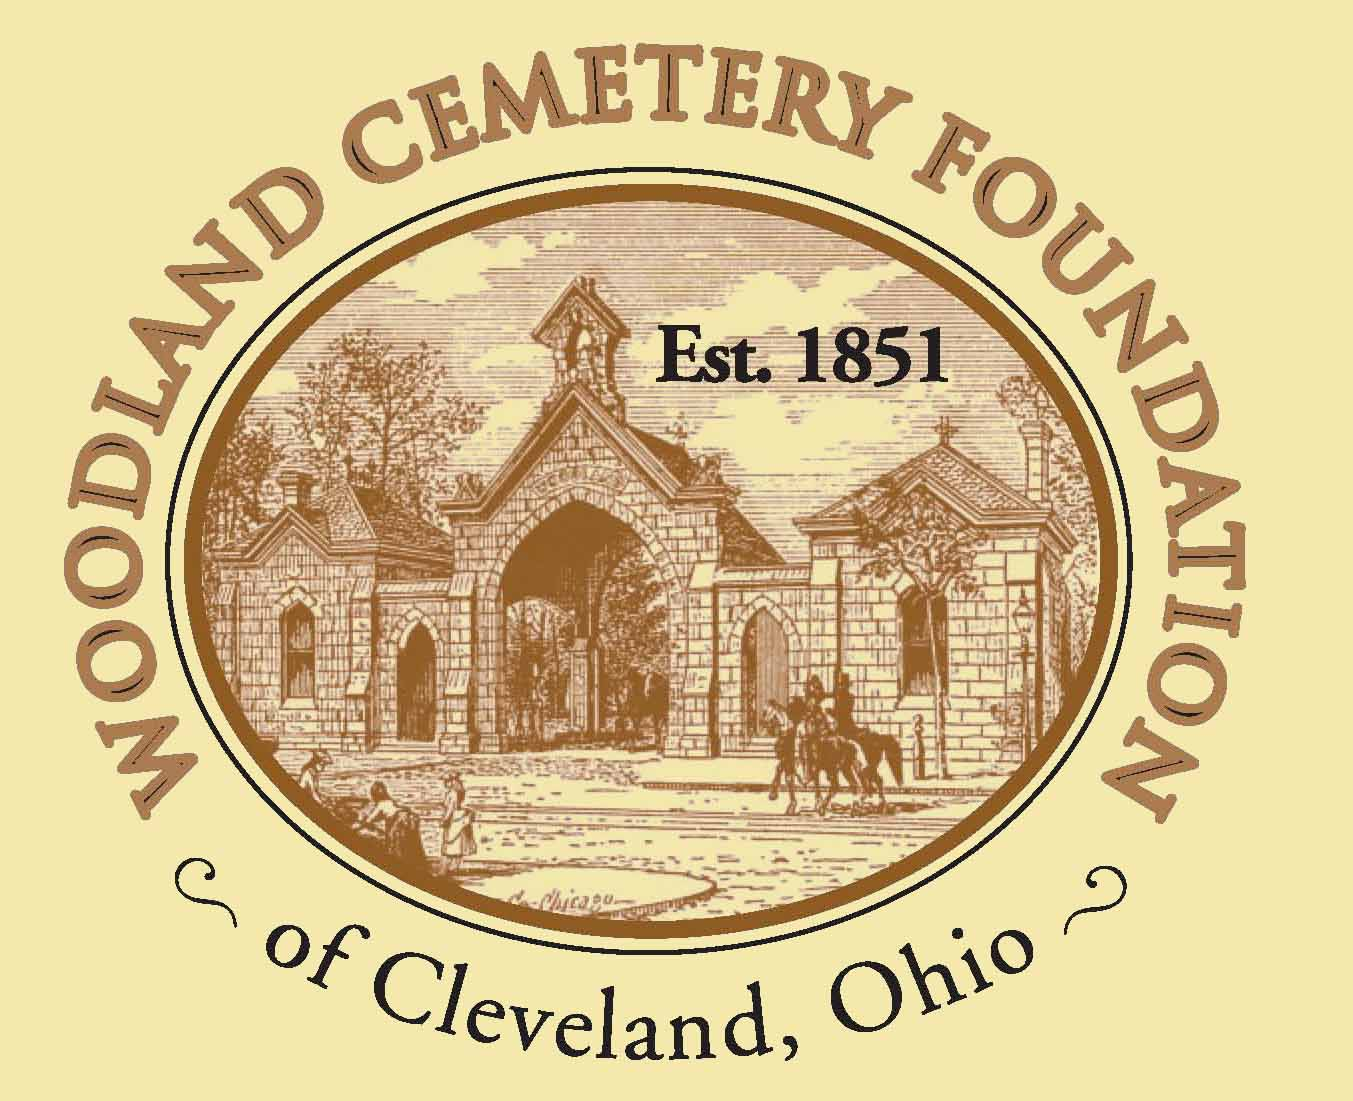 Woodland Cemetery Foundation.